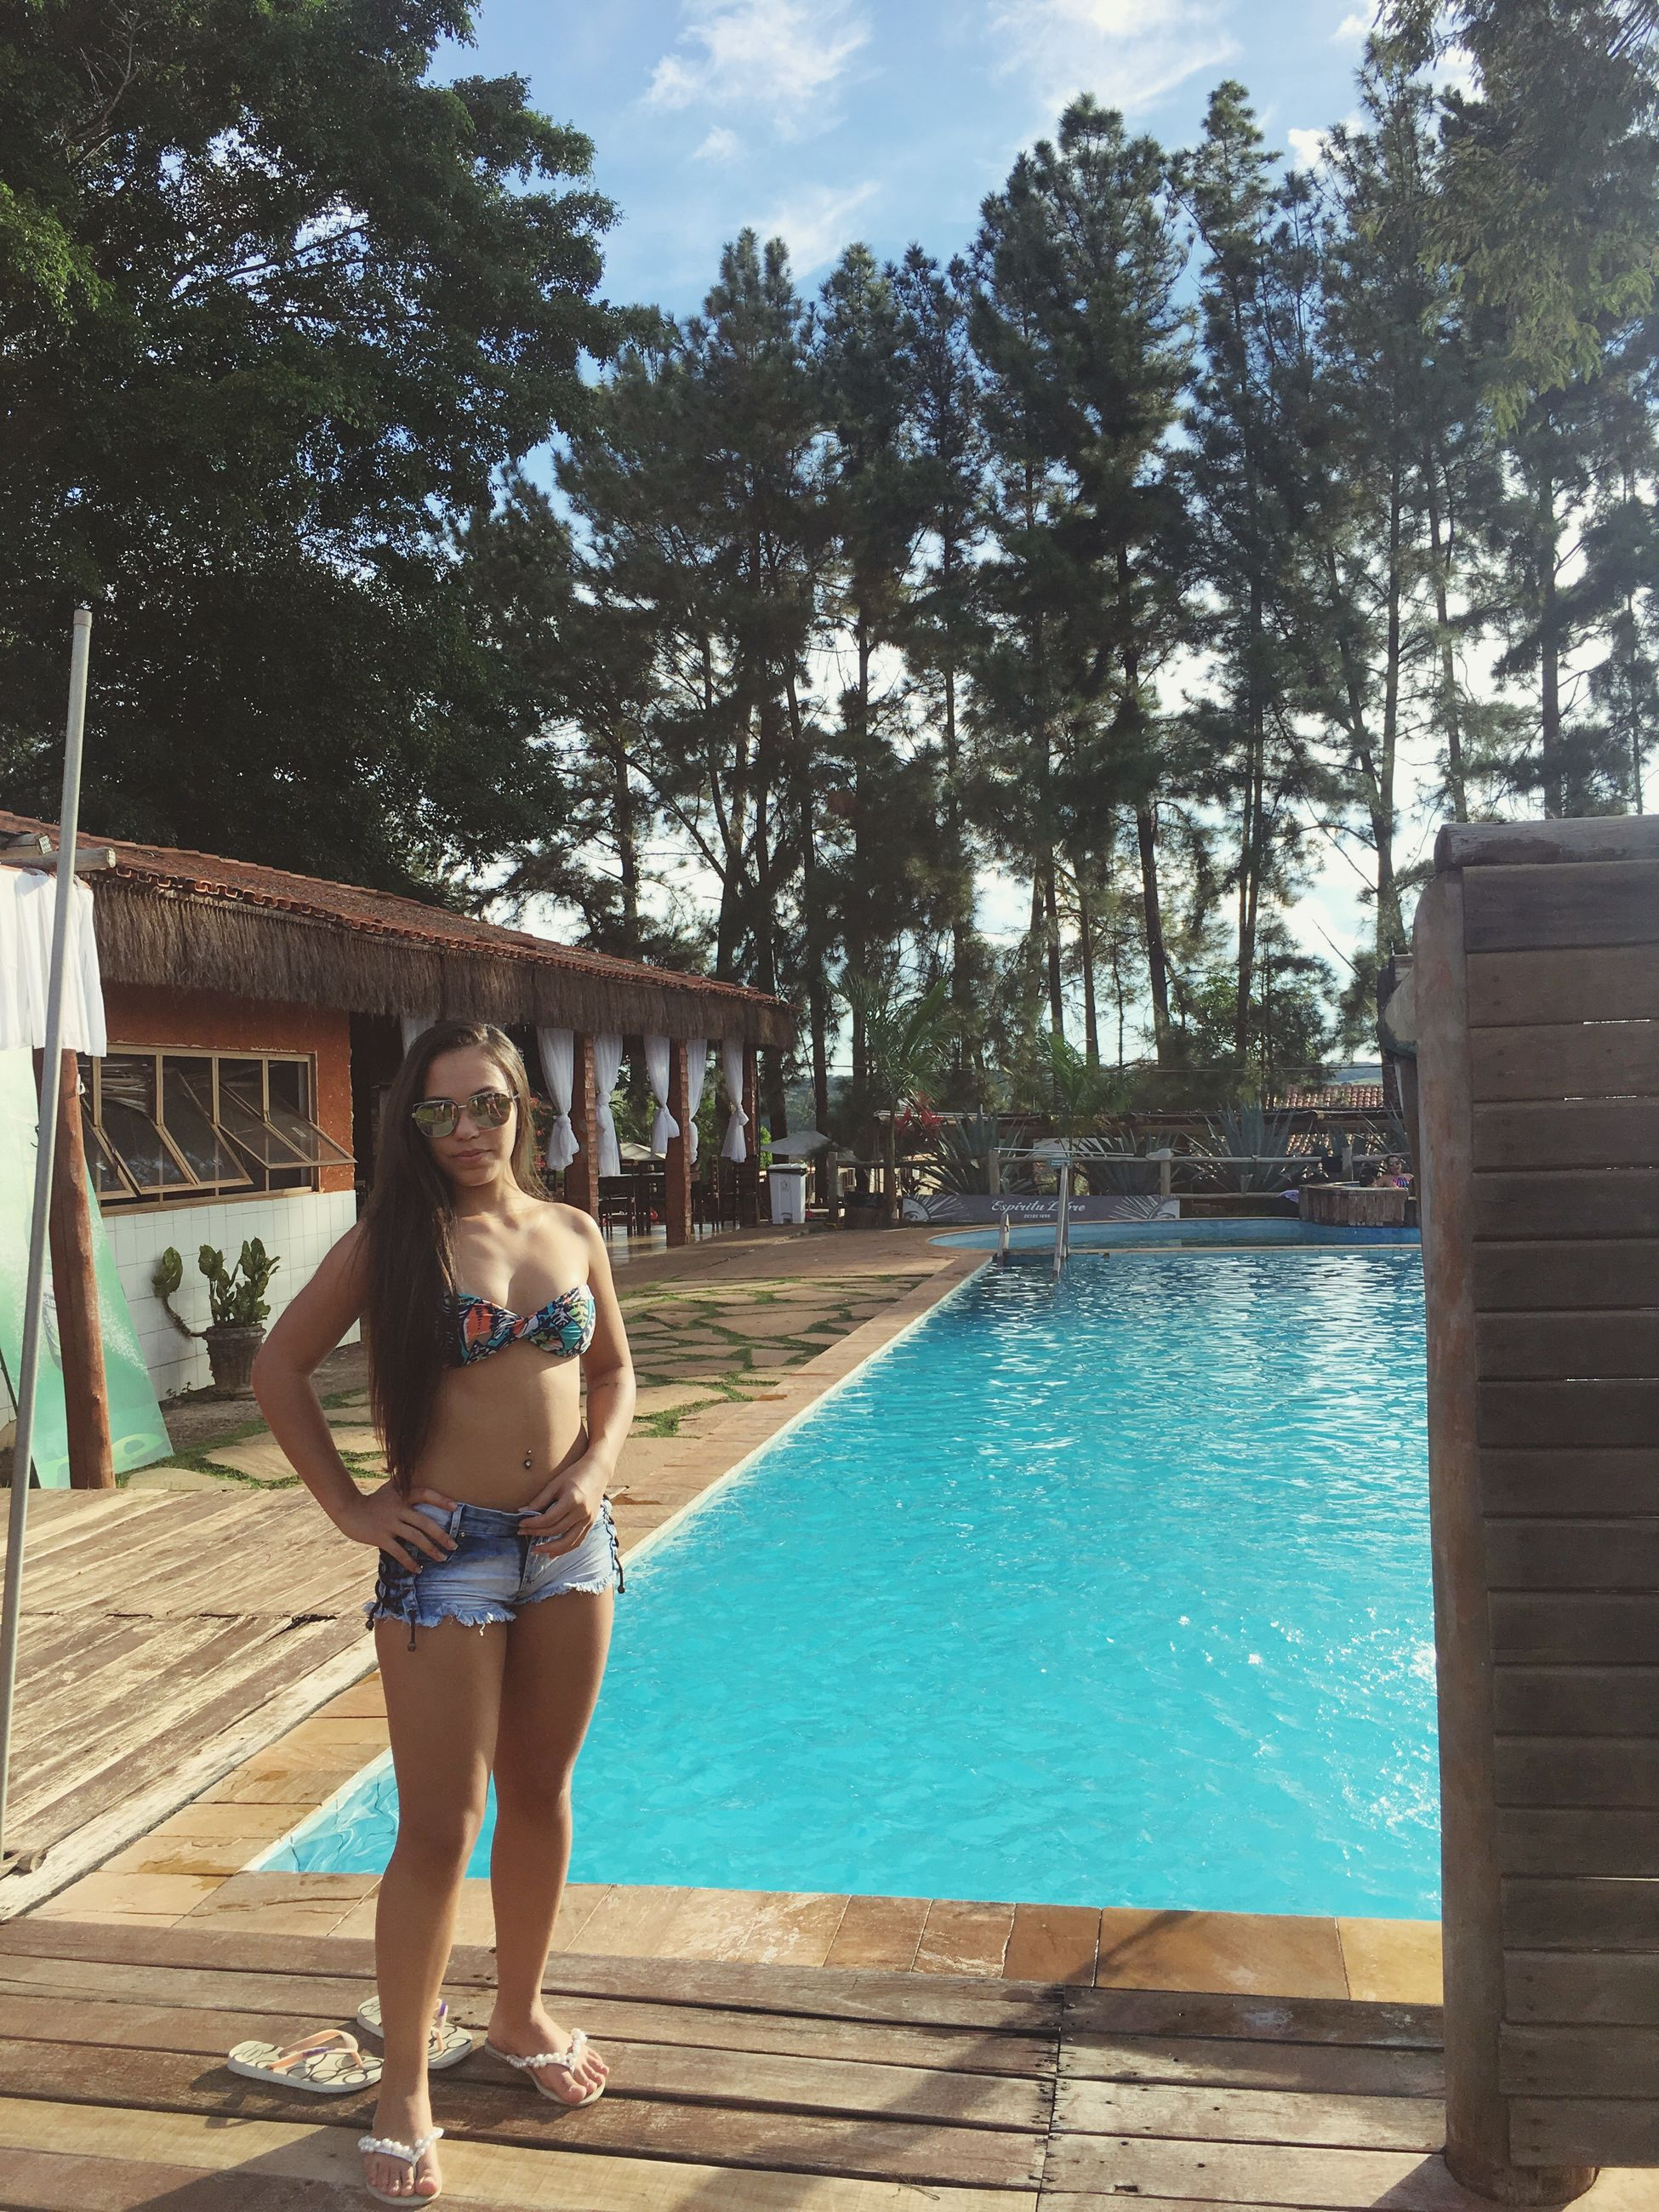 tree, full length, one person, real people, leisure activity, outdoors, day, water, swimming pool, standing, front view, lifestyles, young women, young adult, sky, nature